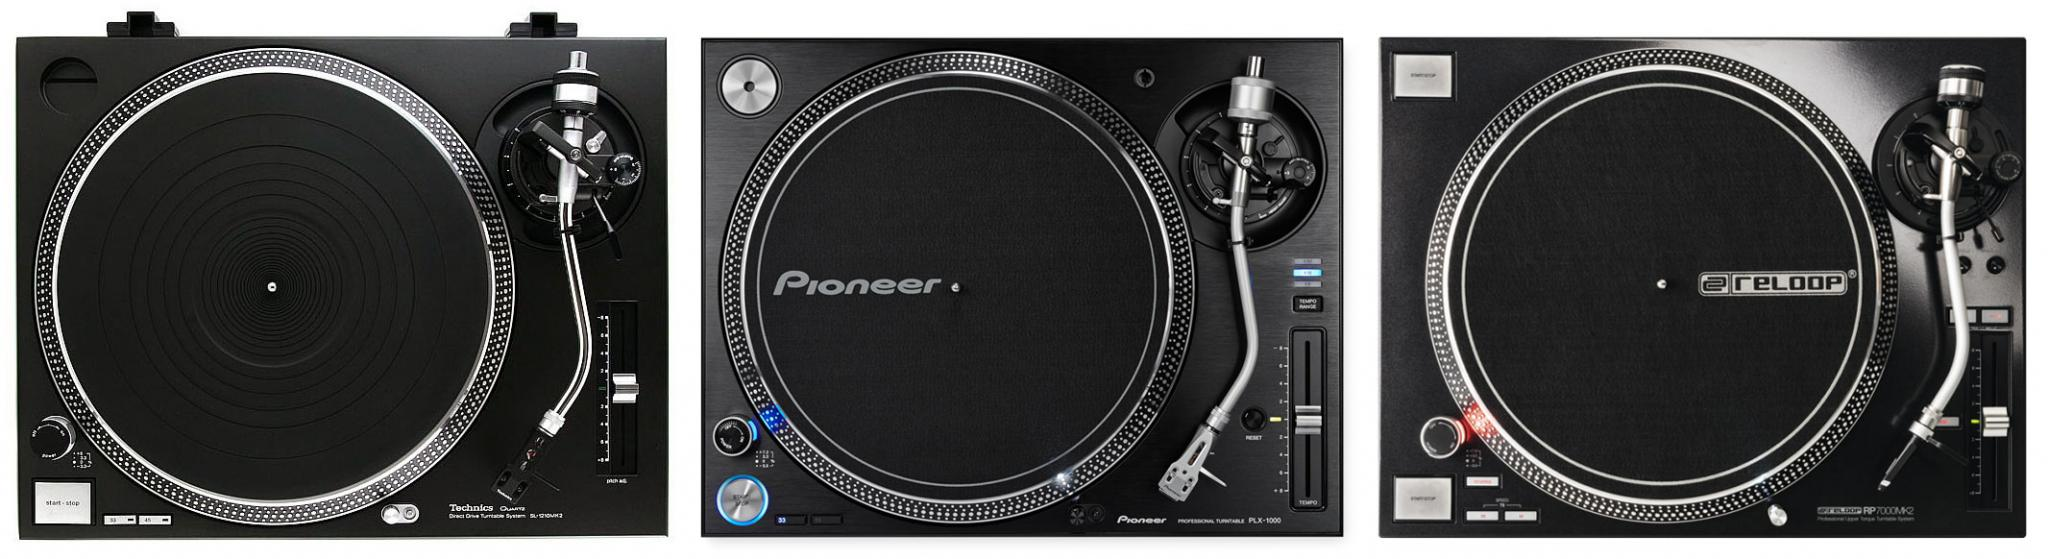 OPINION: The dumbing down of DJ turntables has to stop 7